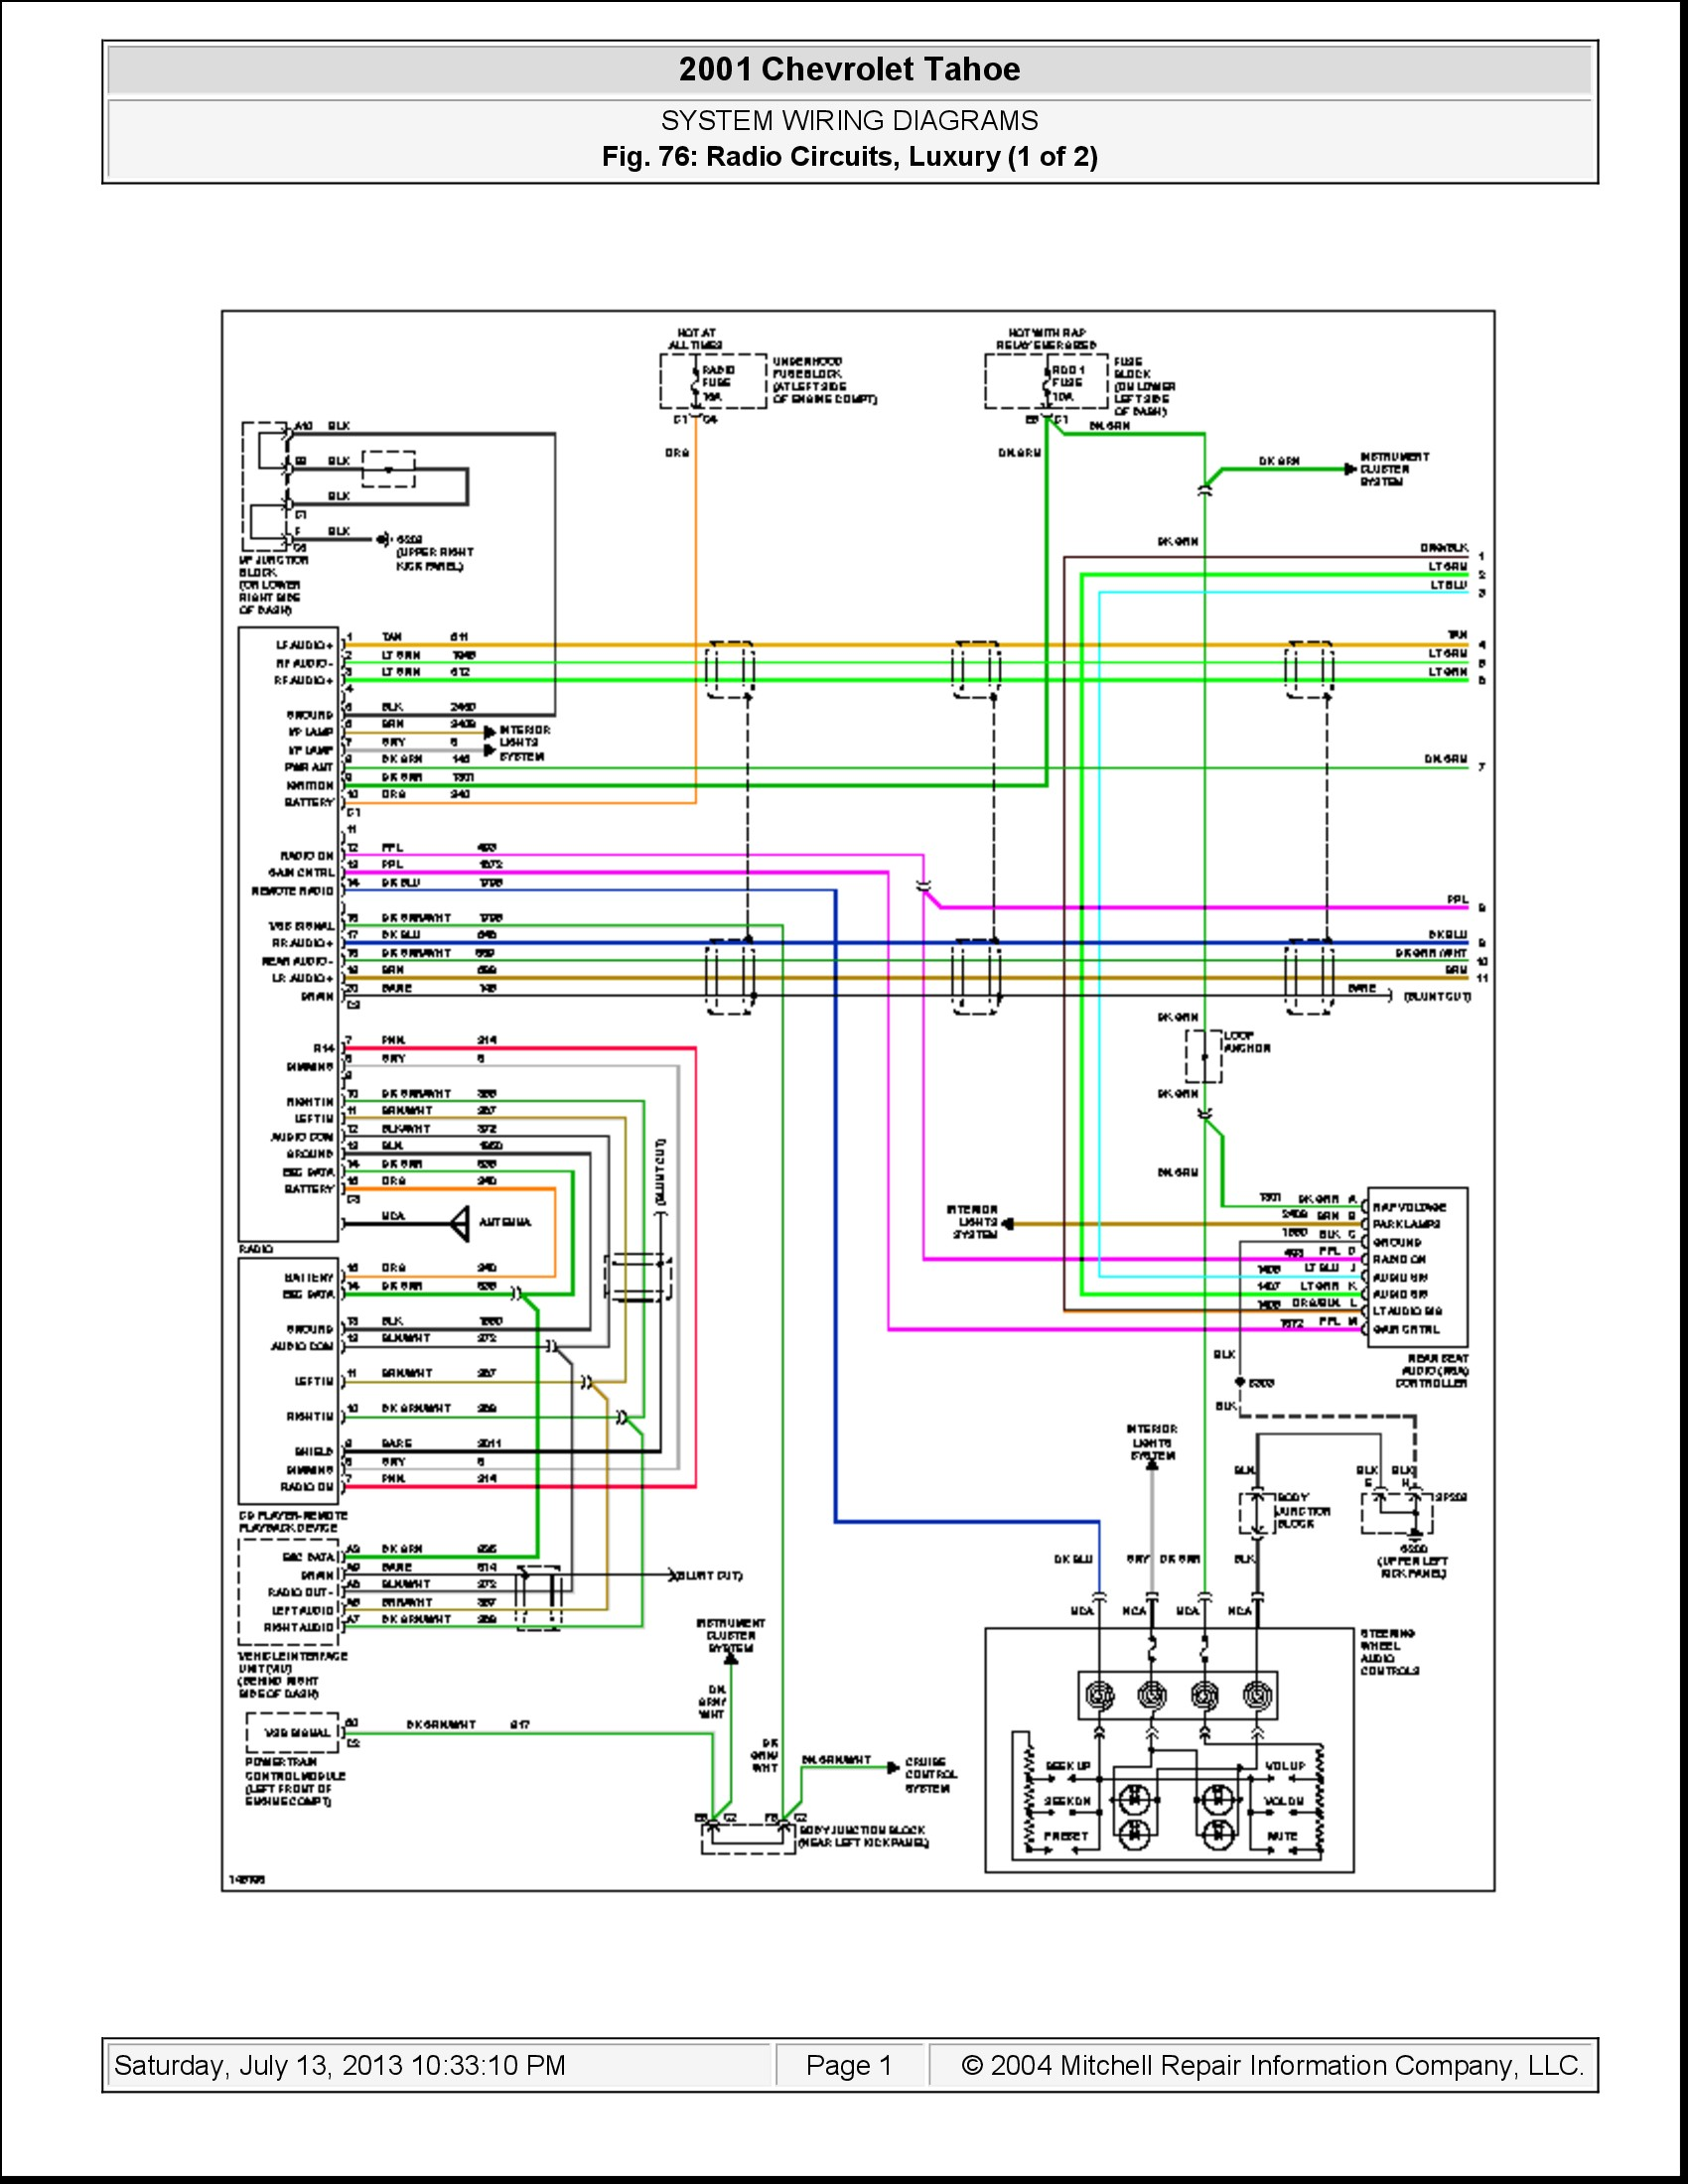 1998 toyota Tacoma Wiring Diagram Stunning toyota Camry Stereo Wiring Diagram Ideas Everything You Of 1998 toyota Tacoma Wiring Diagram